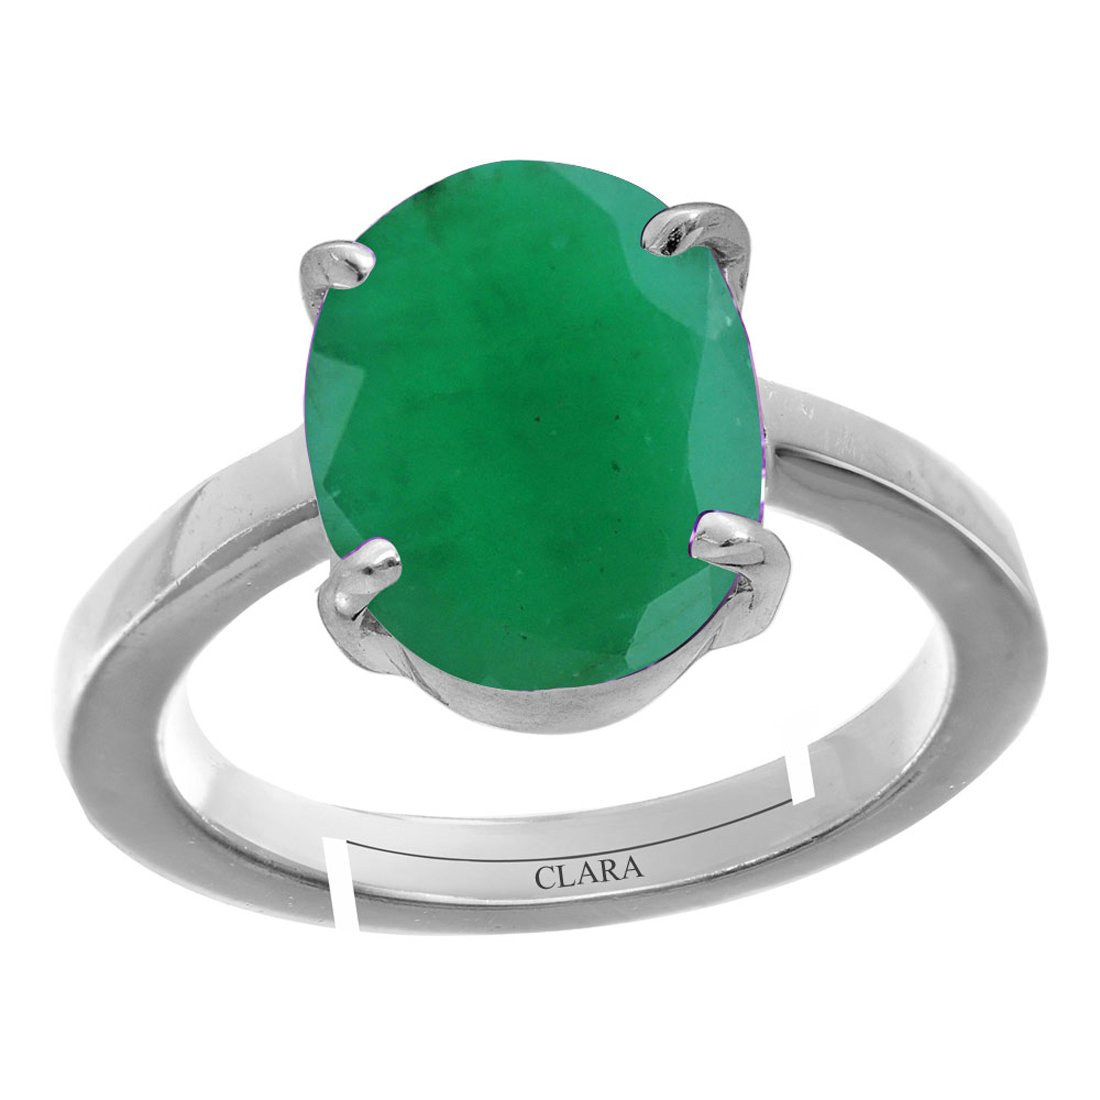 4.8cts or 5.25ratti original stone Stunning Sterling Silver Astrological Ring for Men and Women CLARA Certified Emerald Panna